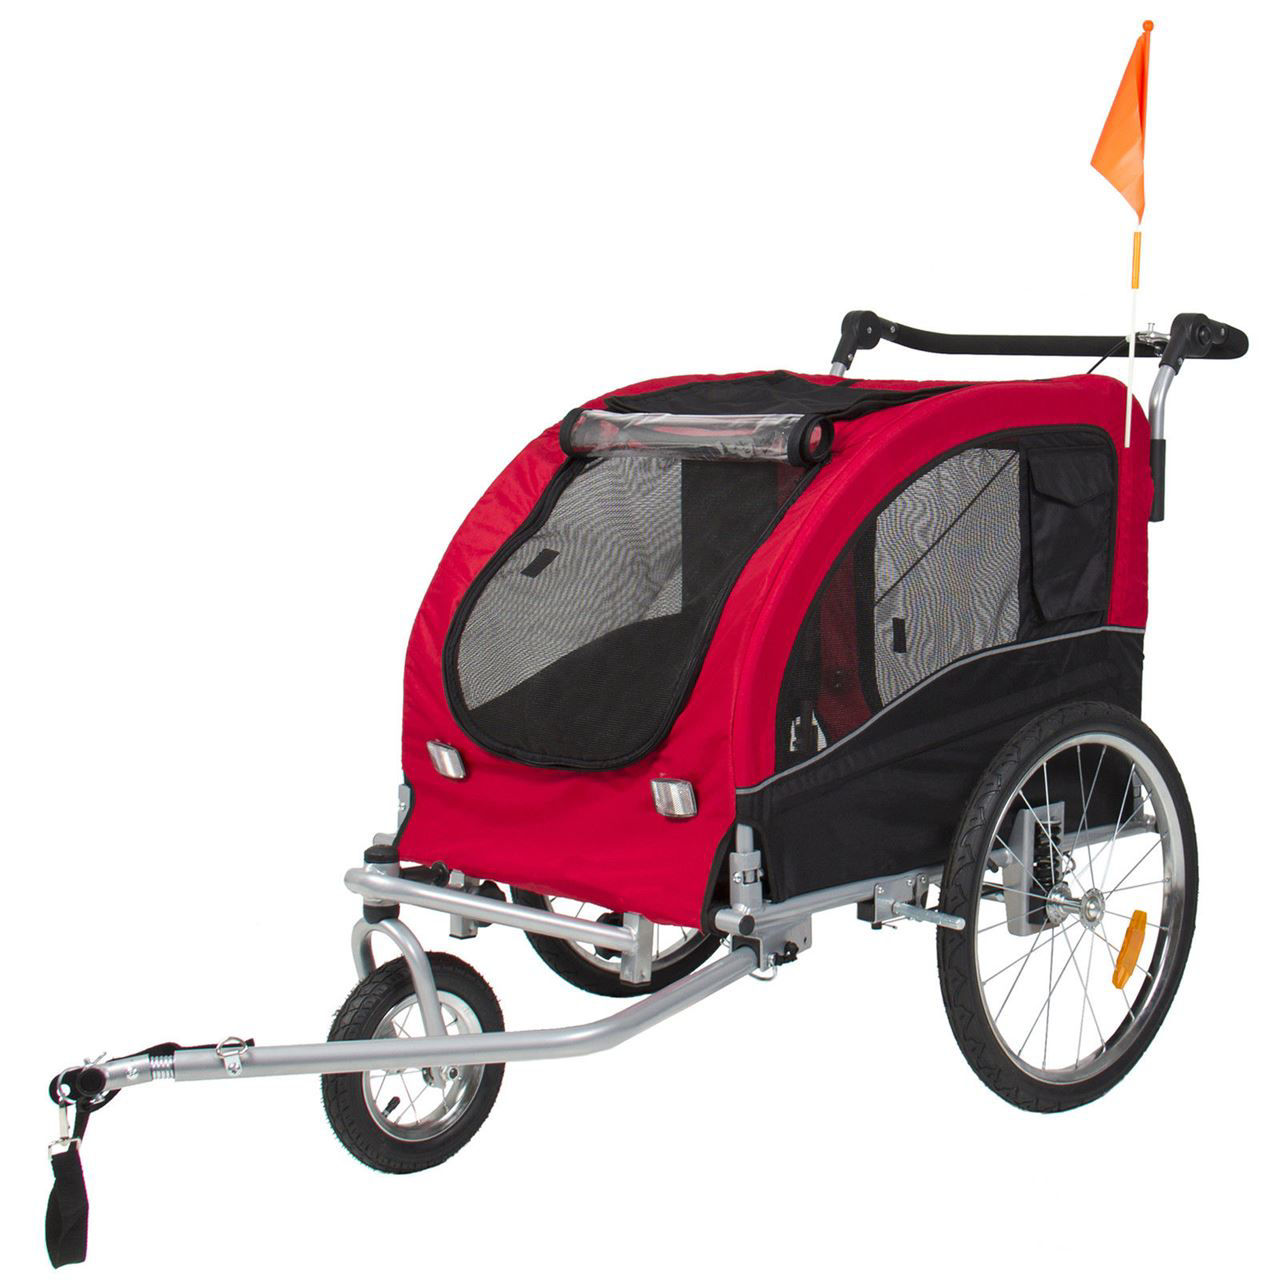 Picture of Pet Dog Stroller Jogging with Suspension 2 in 1 - Red